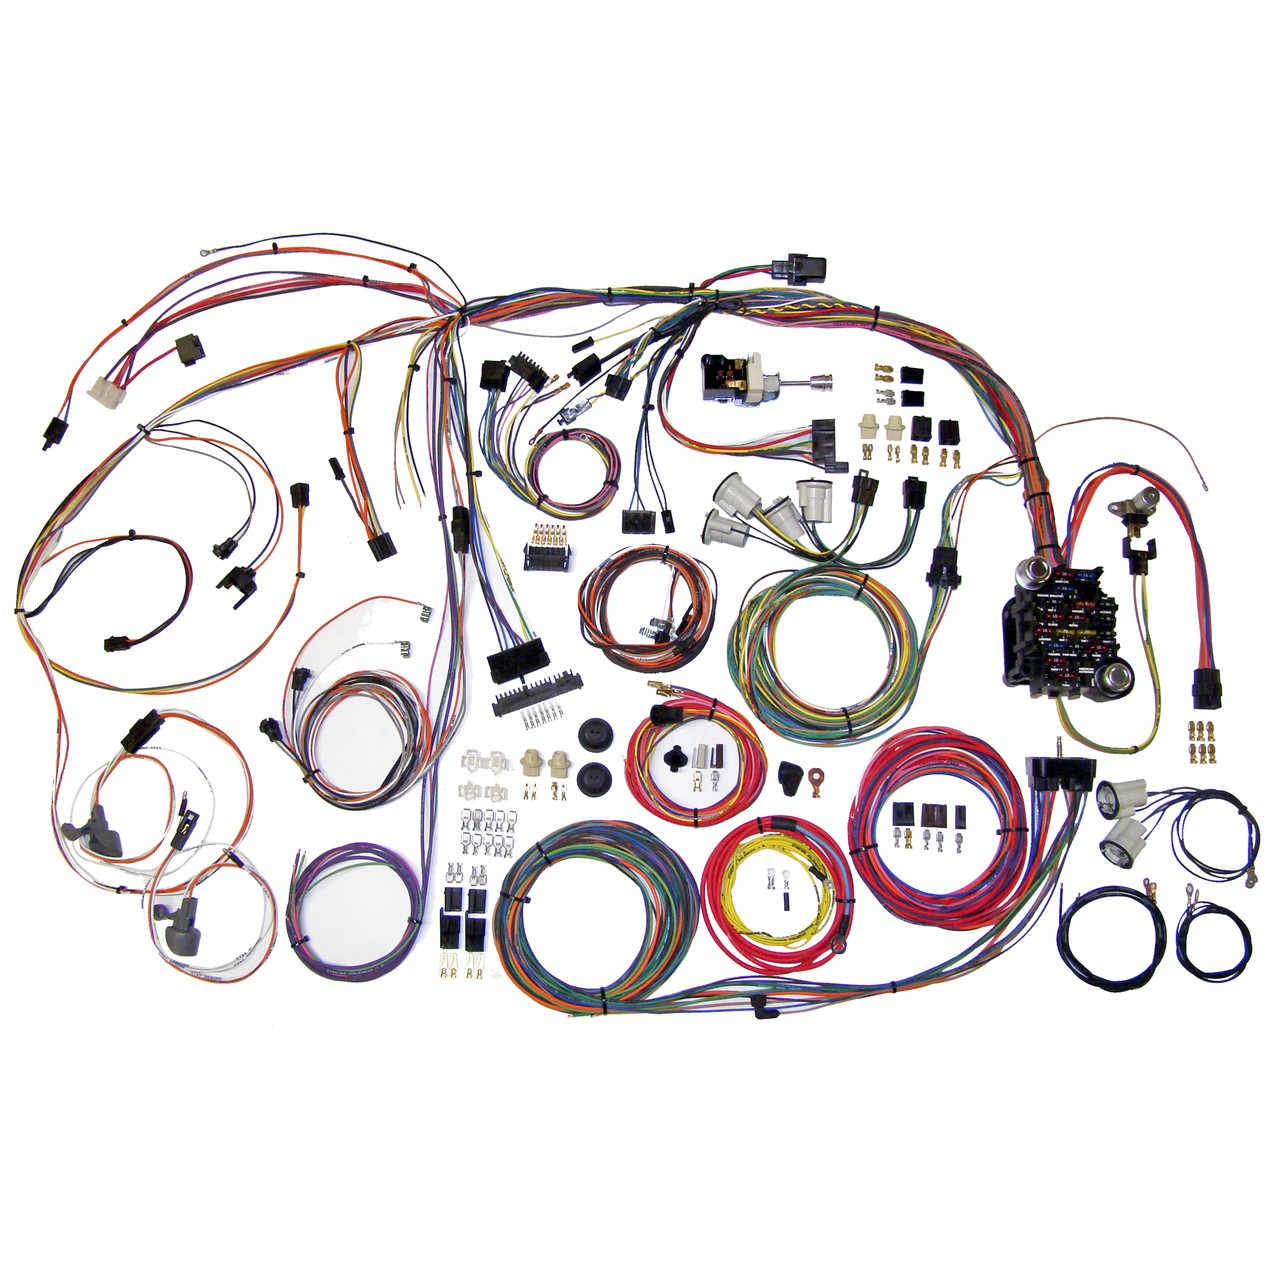 american autowire 1970 1972 chevrolet chevelle el camino classic 19701972 chevelle complete wiring harness kit 19701972 chevelle [ 1280 x 1280 Pixel ]